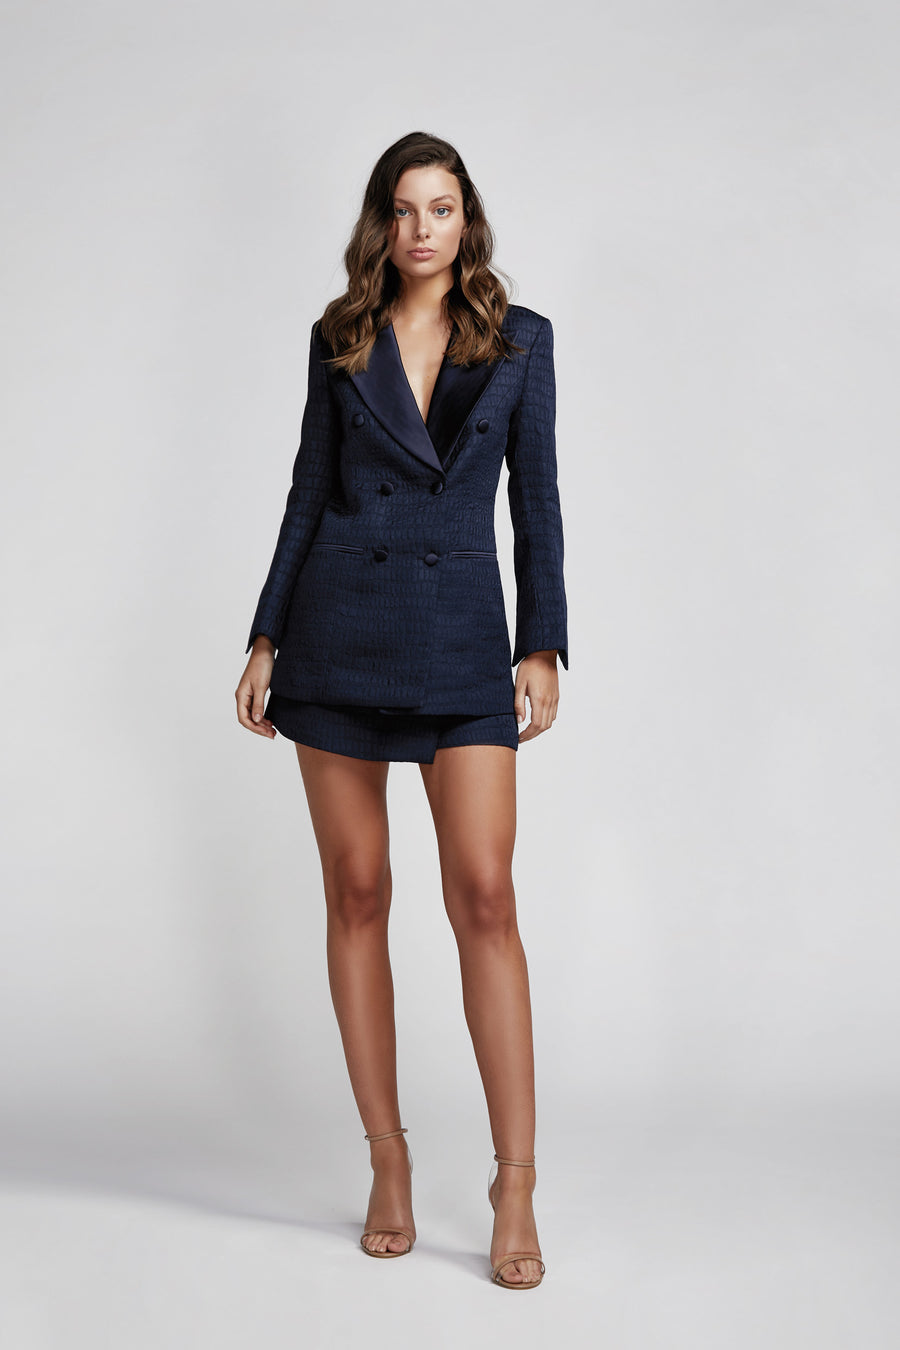 Evita Double Breasted Jacket - Navy